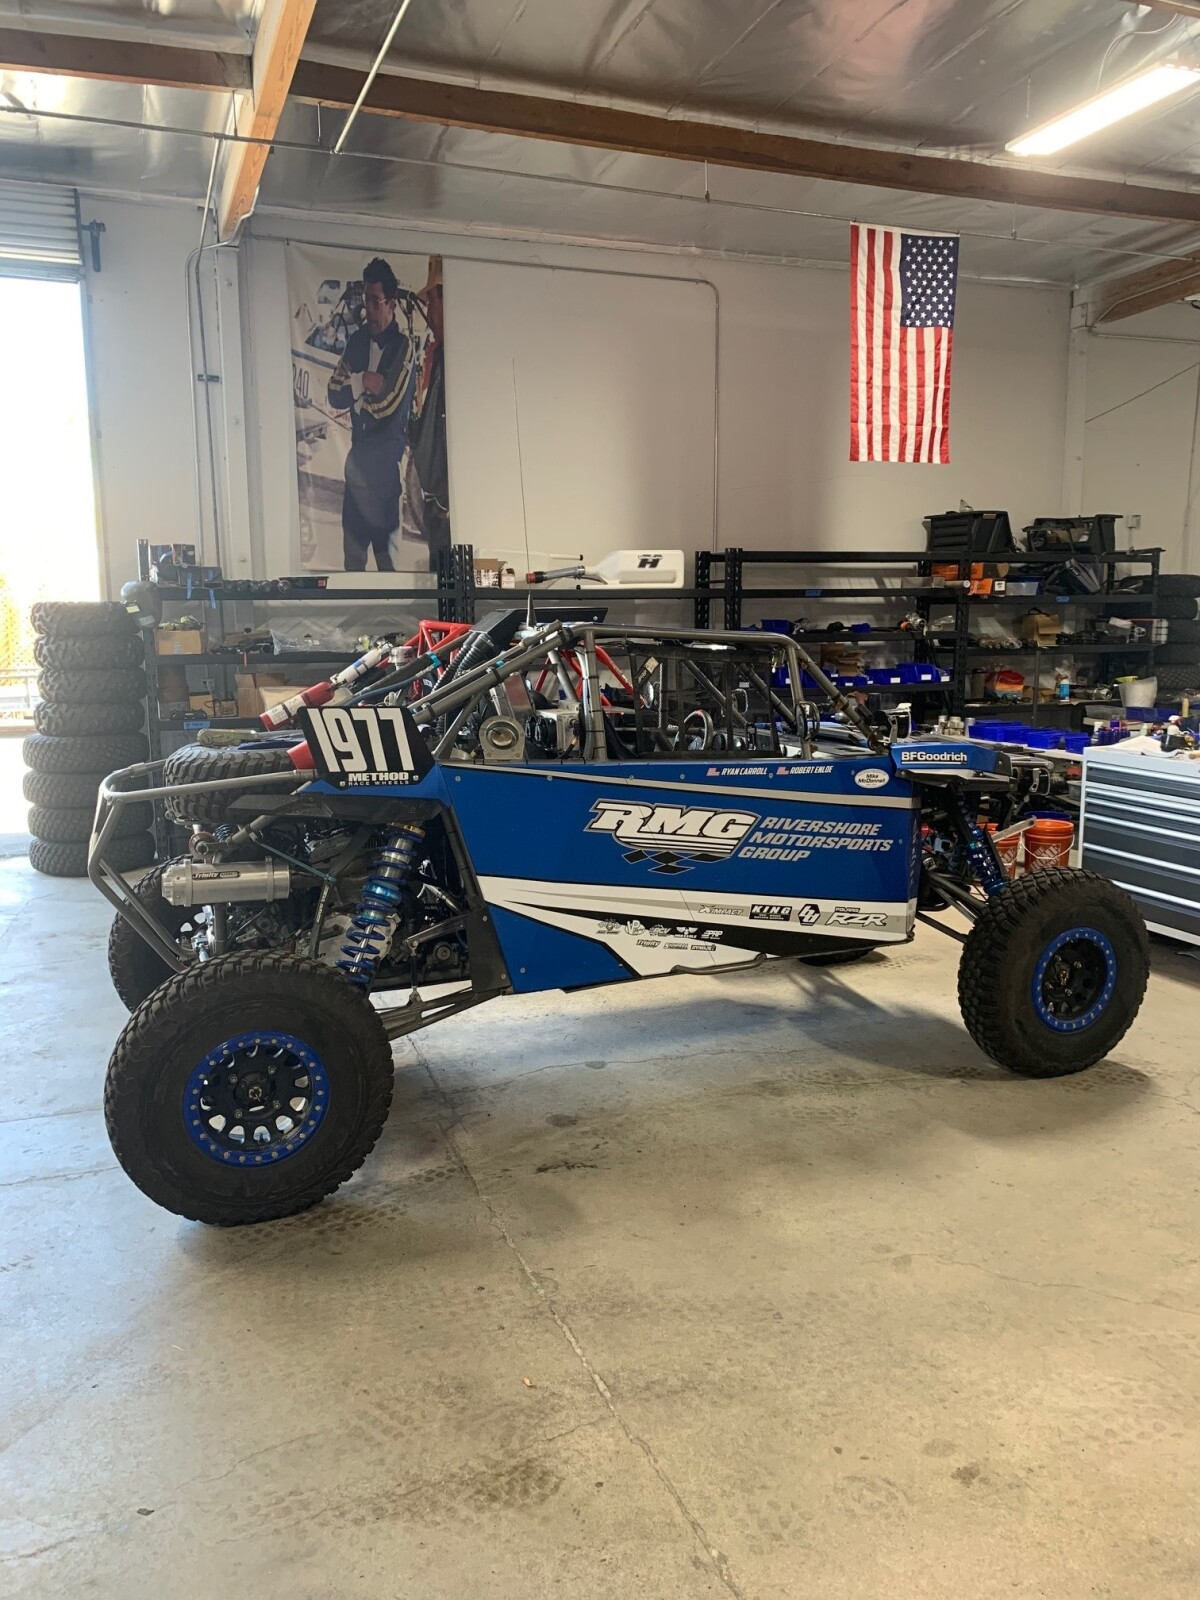 For Sale: Polaris RZR XP1000 Race UTV - NA Production class - Cognito chassis - photo0